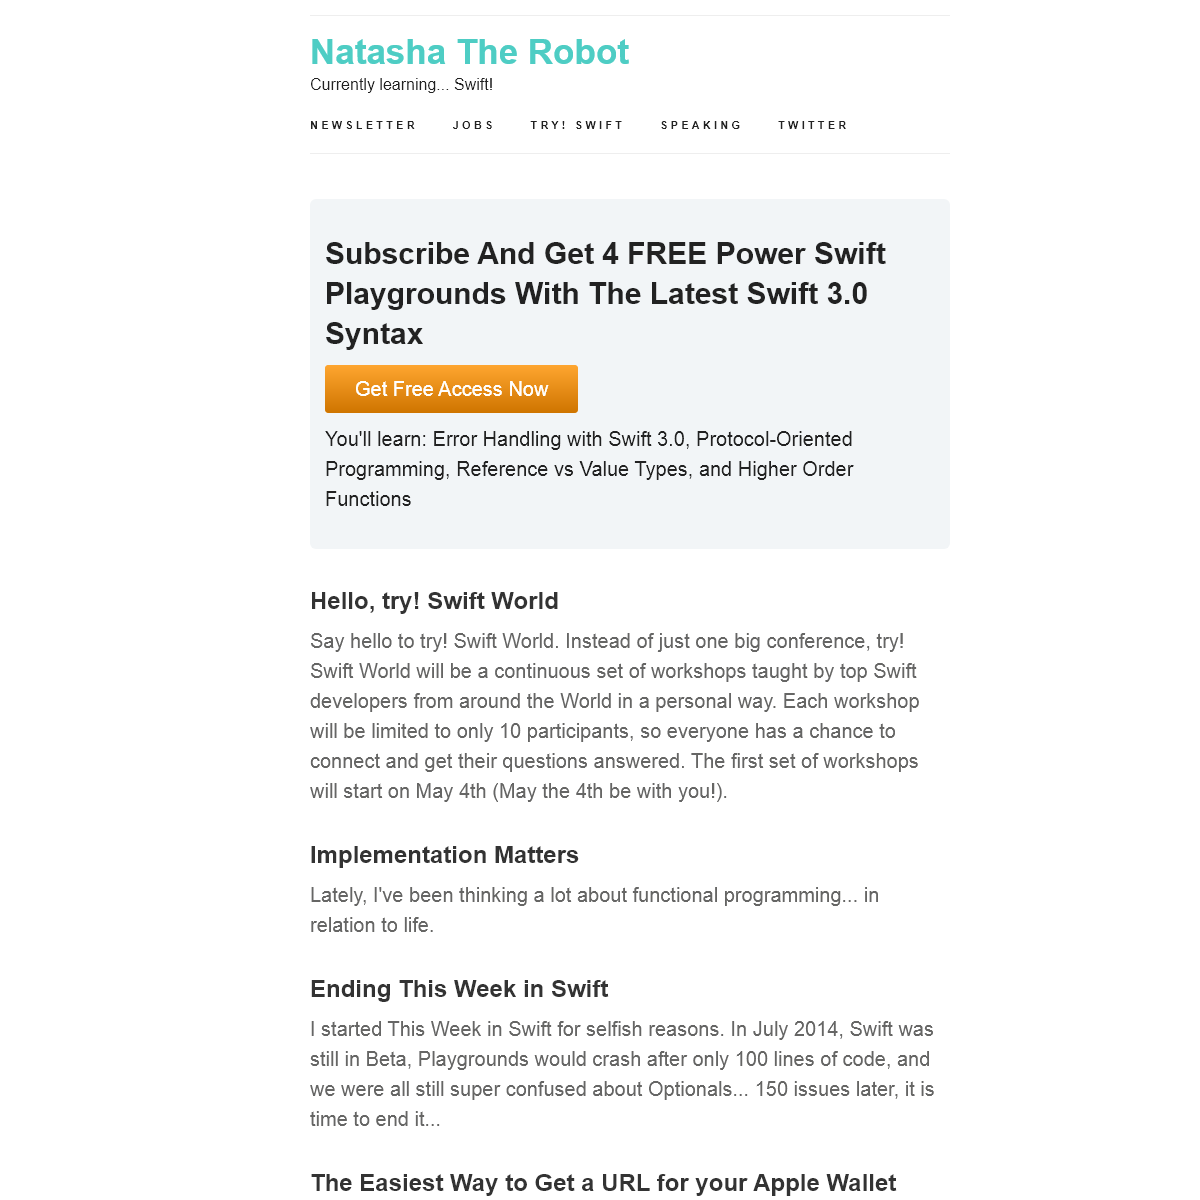 Natasha The Robot